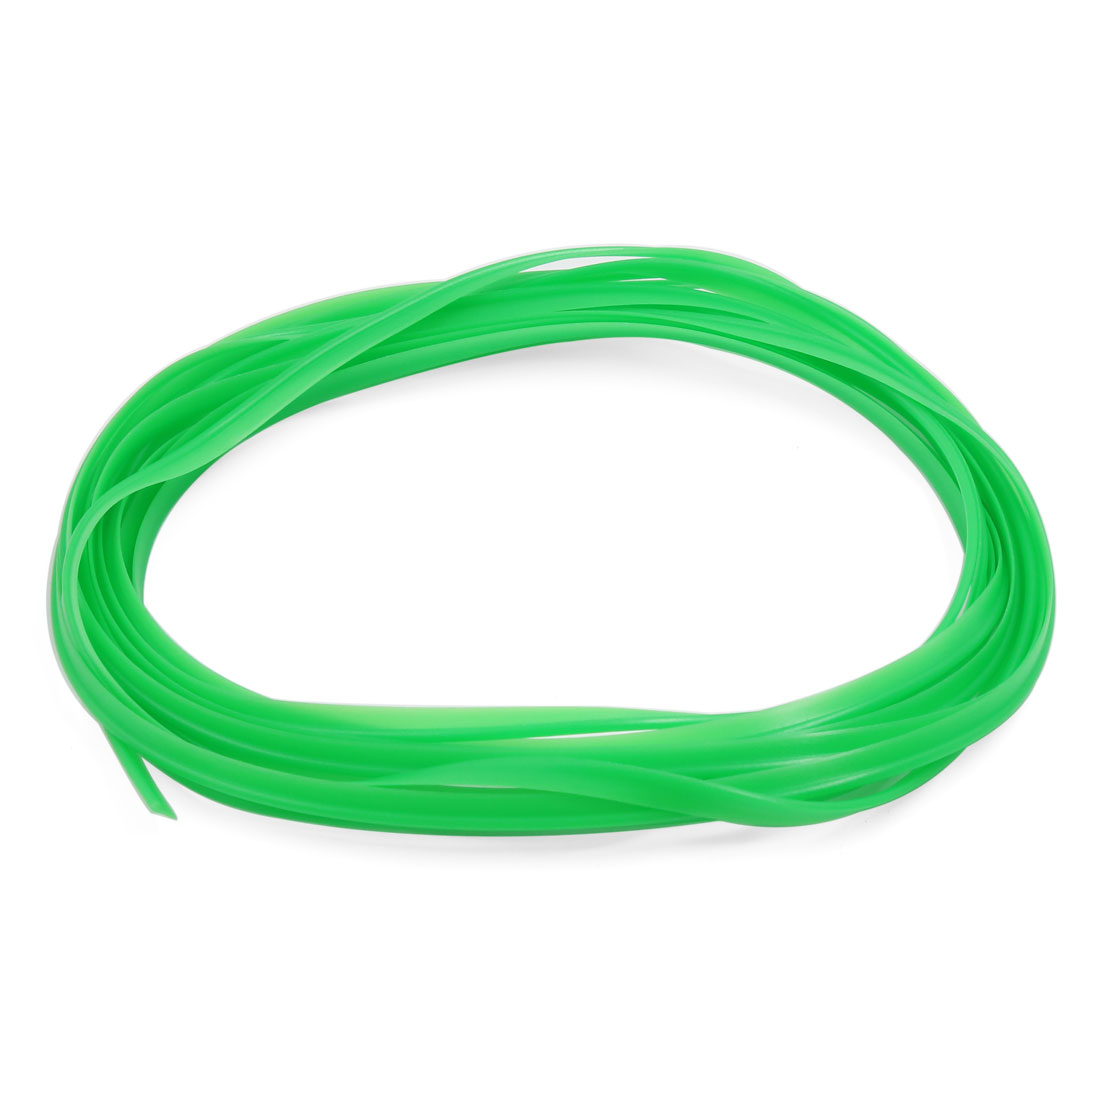 5M Green Flexible Trim for Car Interior Exterrior Moulding Strip Decorative Line